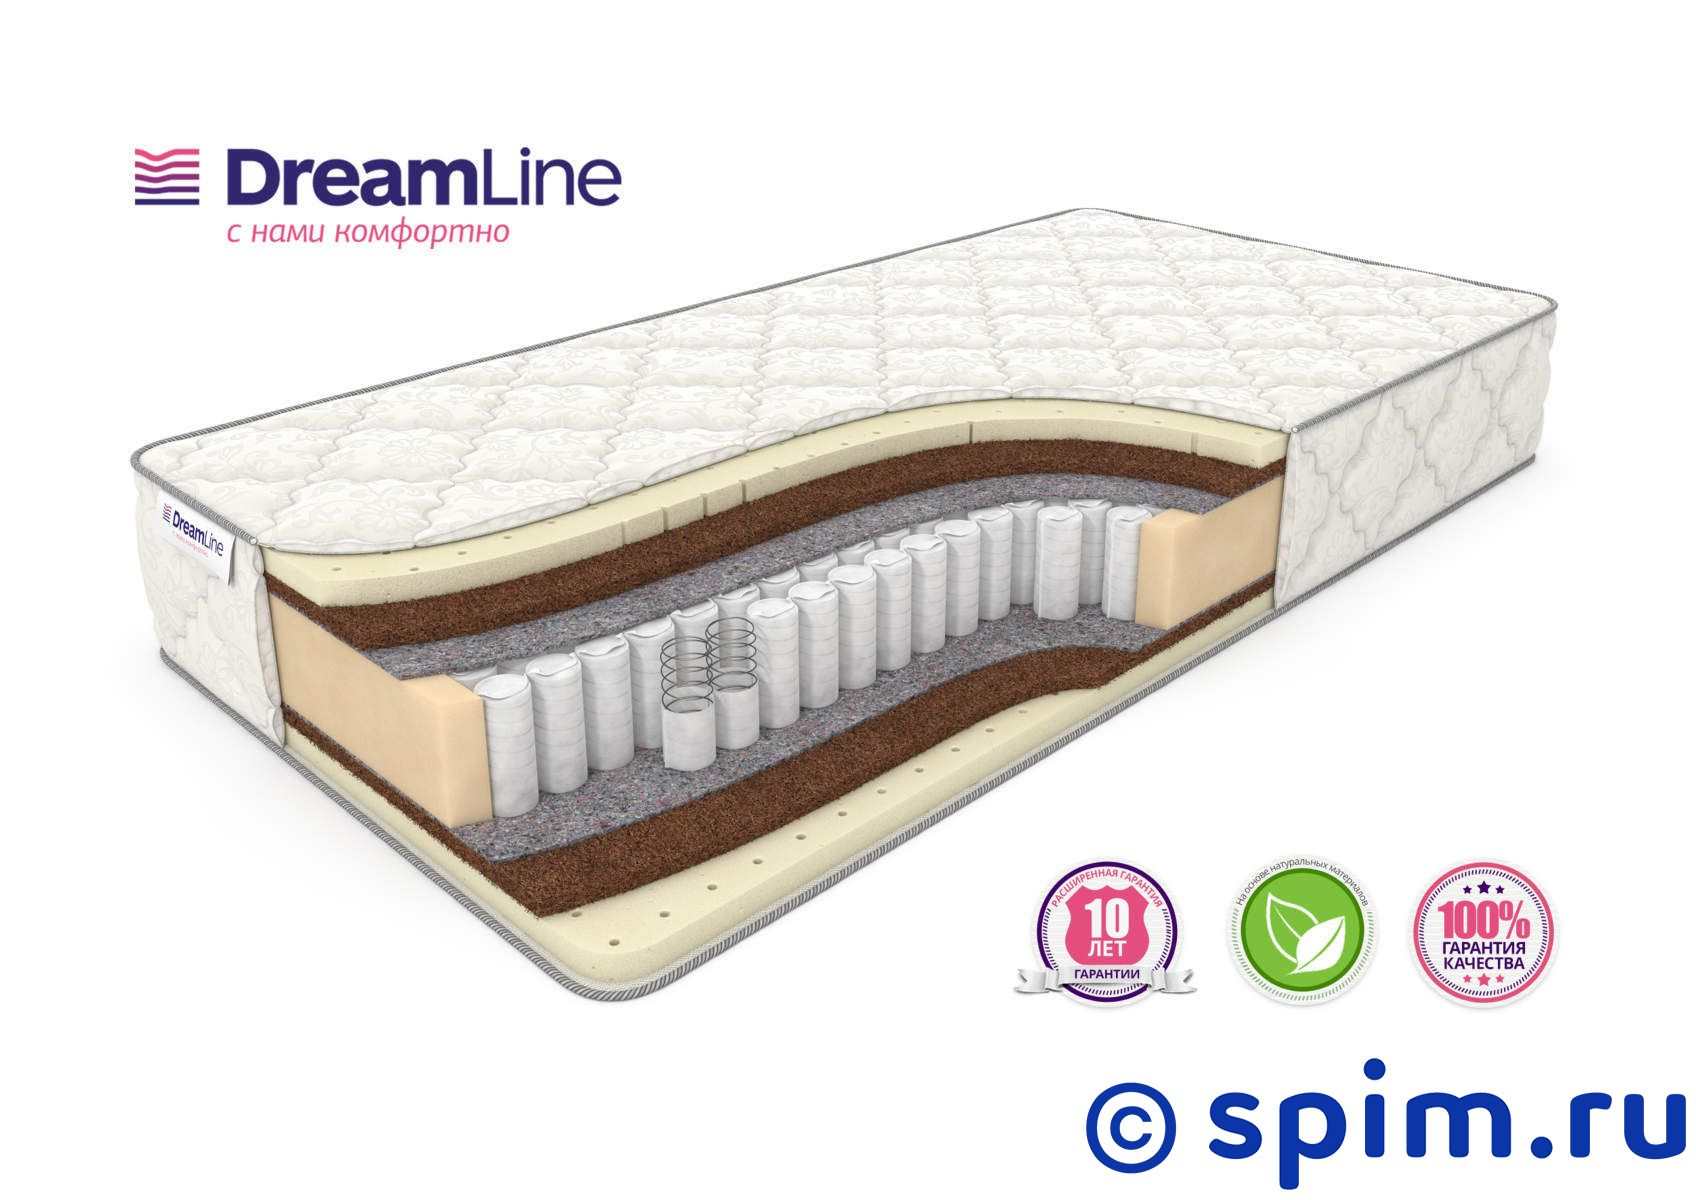 Матрас DreamLine Prime Medium Tfk 150х195 см матрас dreamline sleepdream medium tfk 140х200 см